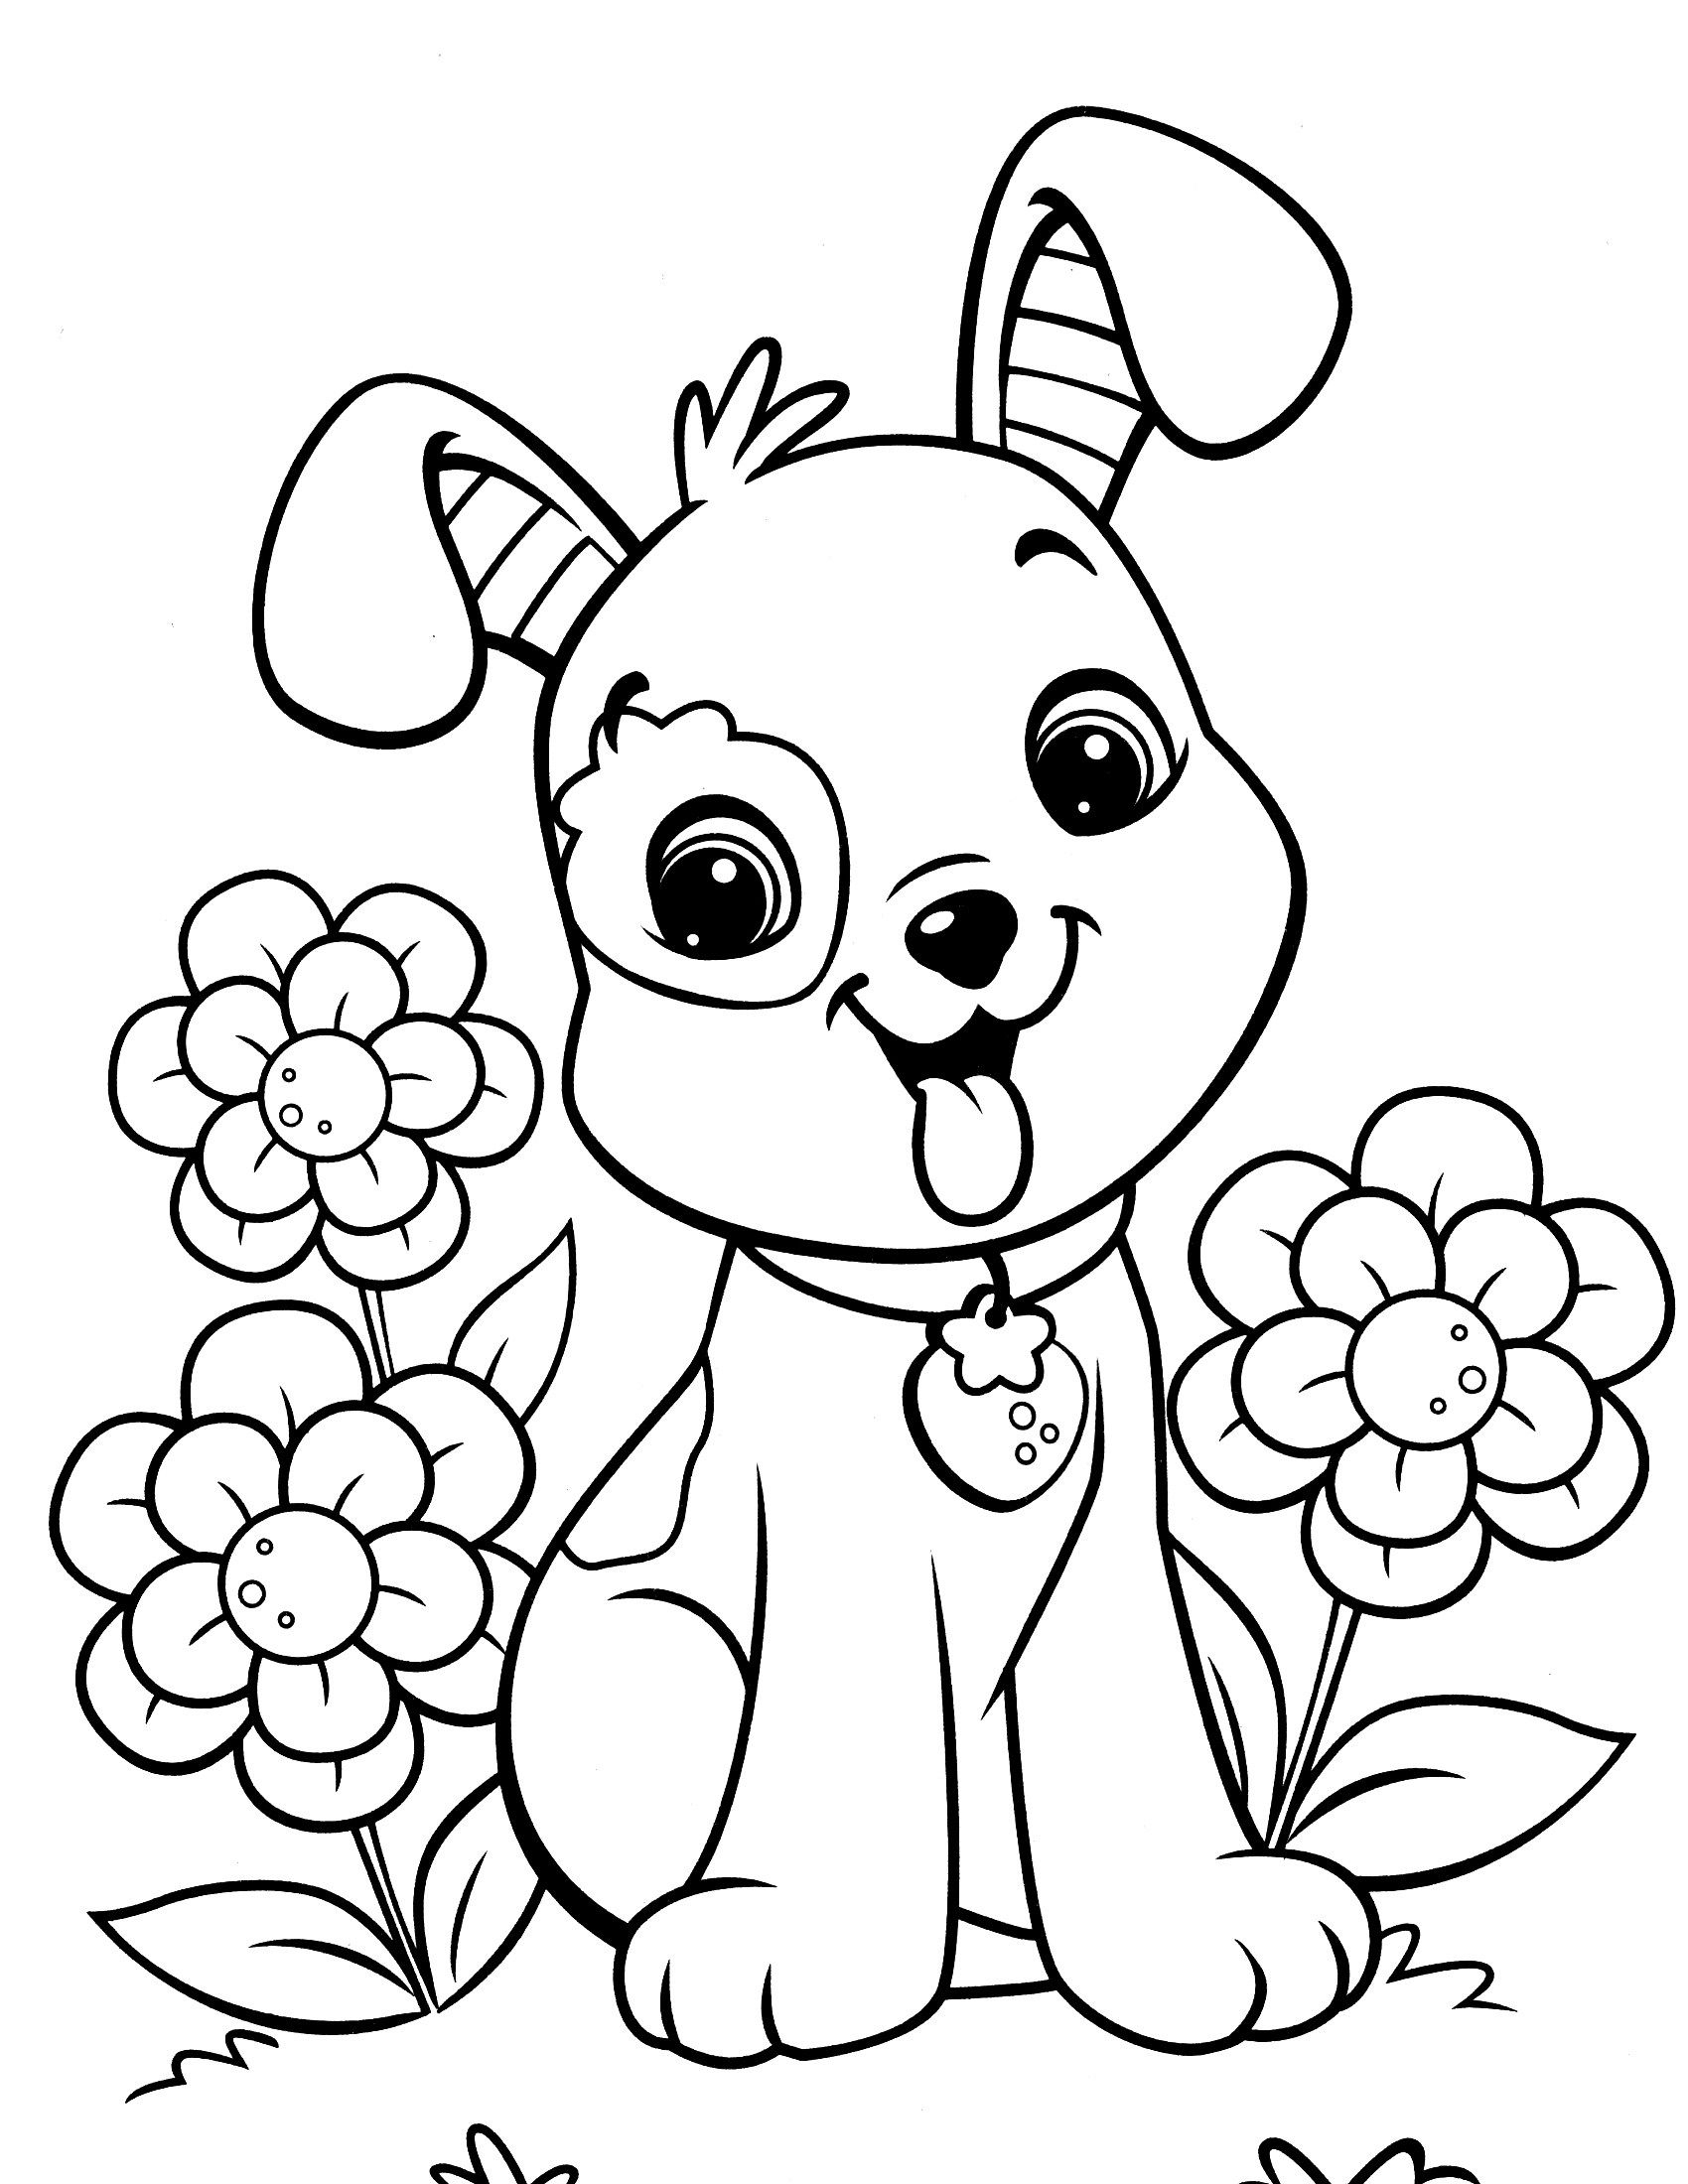 Image Result For Free Dog Coloring Pages | Coussin Cochon - Free Printable Dog Coloring Pages